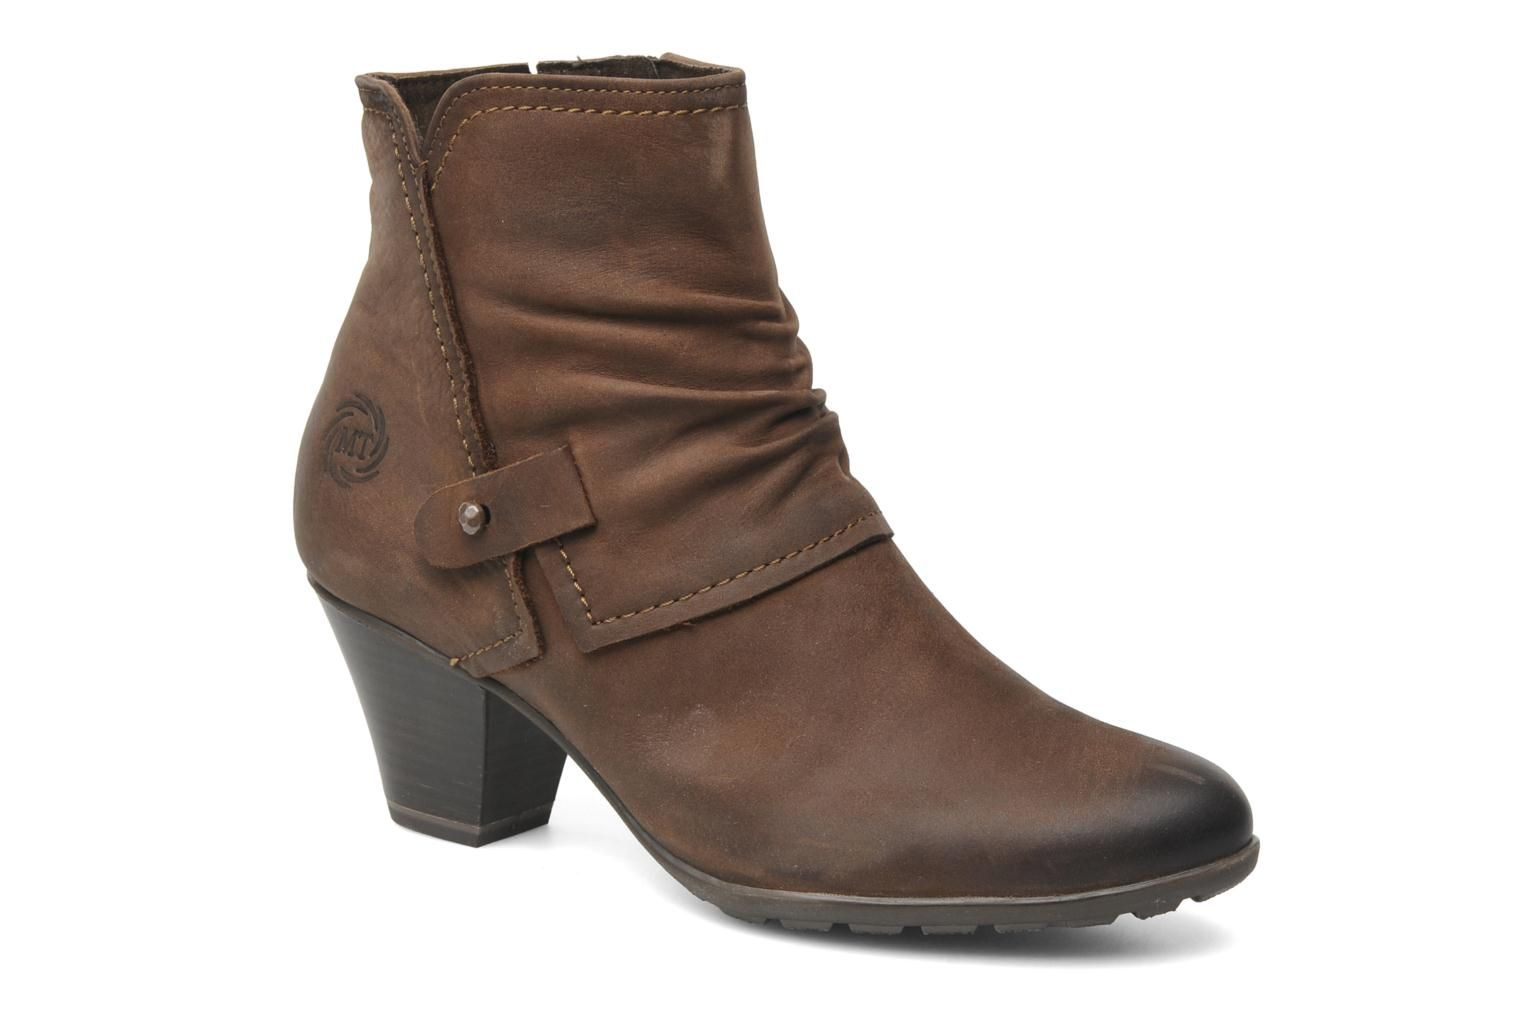 Bimo by Marco Tozzi (Black)   Sarenza UK   Your Ankle boots Bimo Marco Tozzi delivered for Free